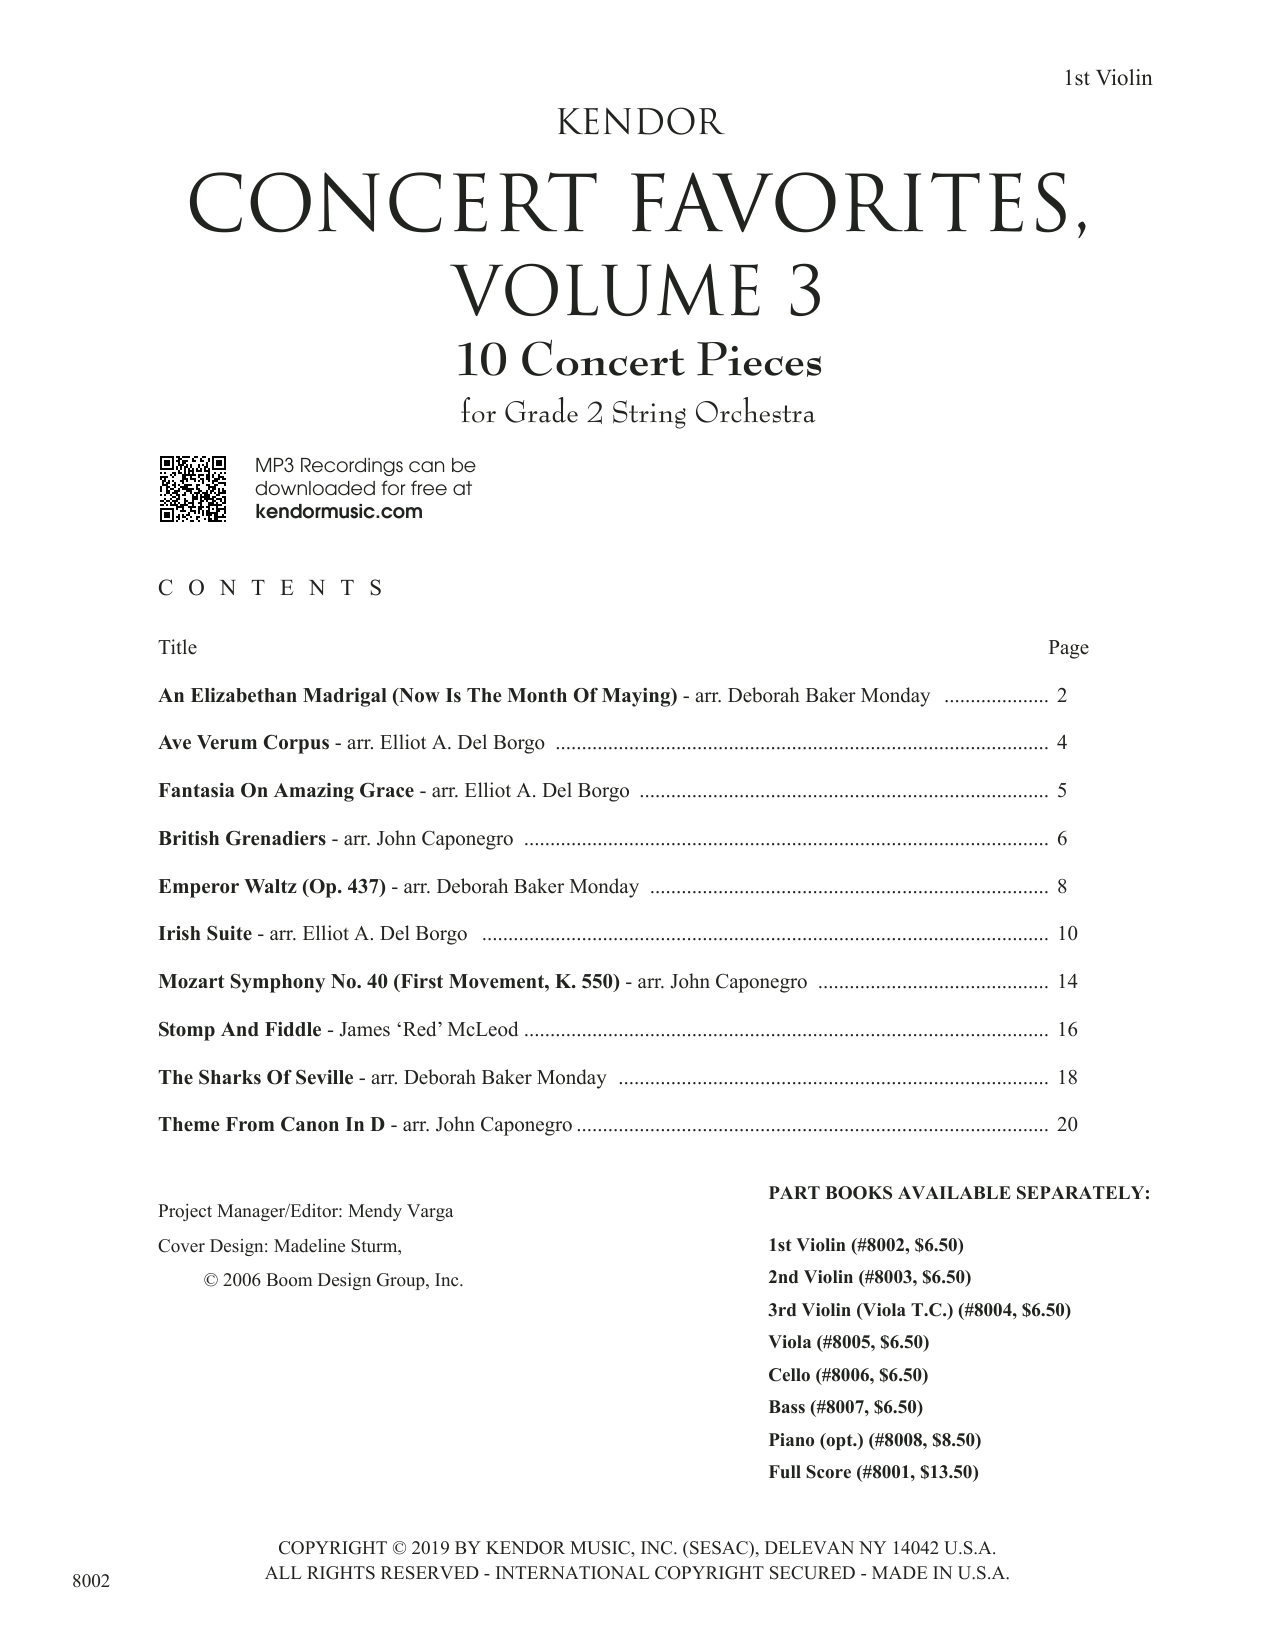 Kendor Concert Favorites, Volume 3 - 1st Violin Sheet Music